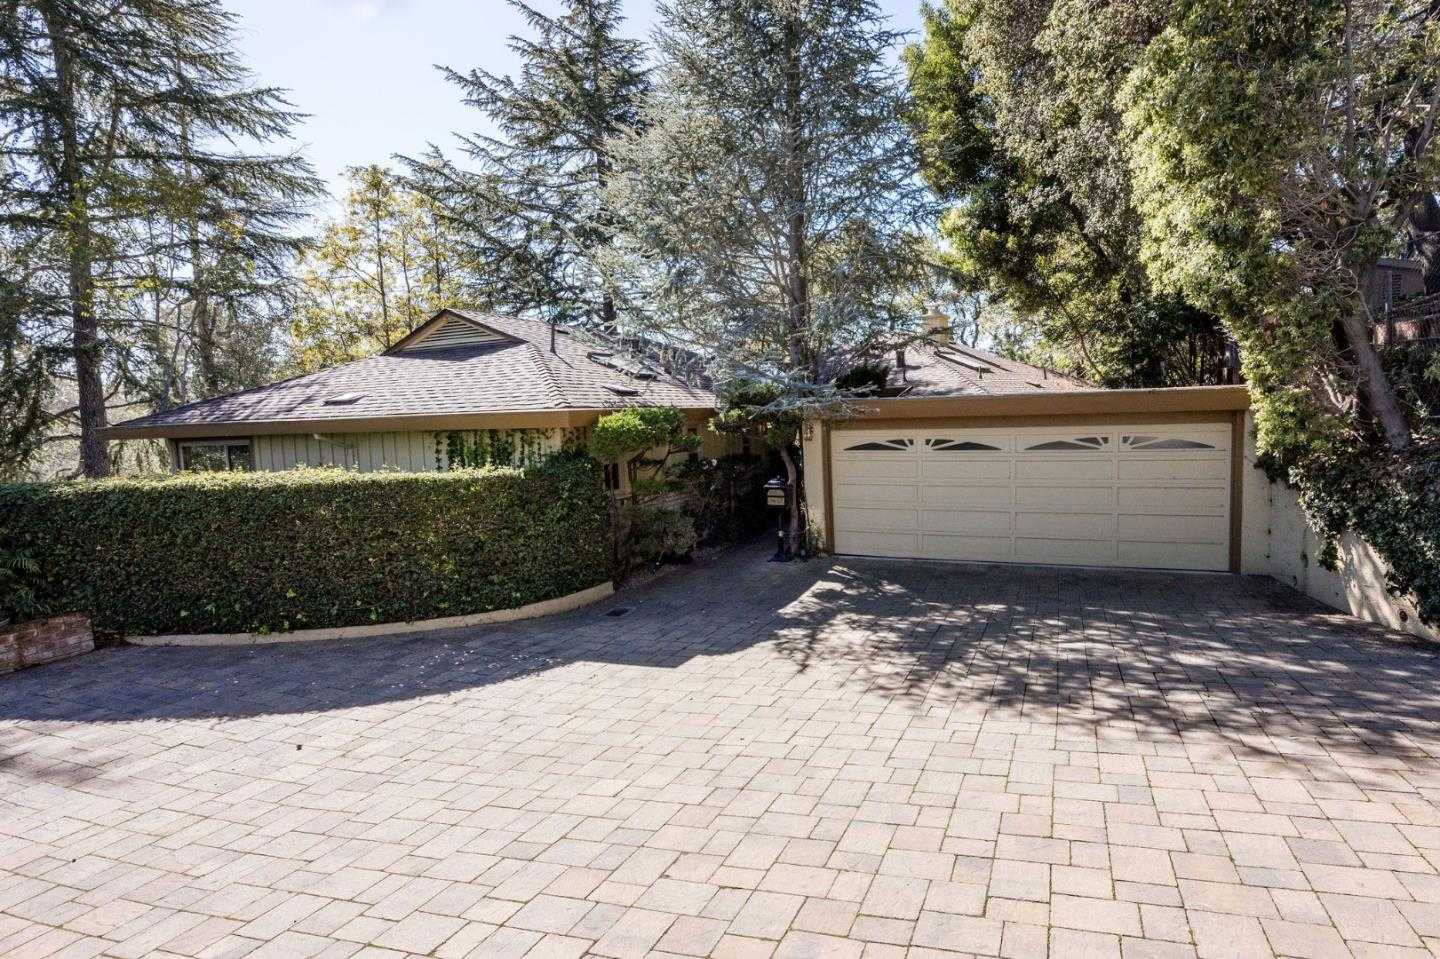 $2,999,000 - 3Br/3Ba -  for Sale in San Mateo